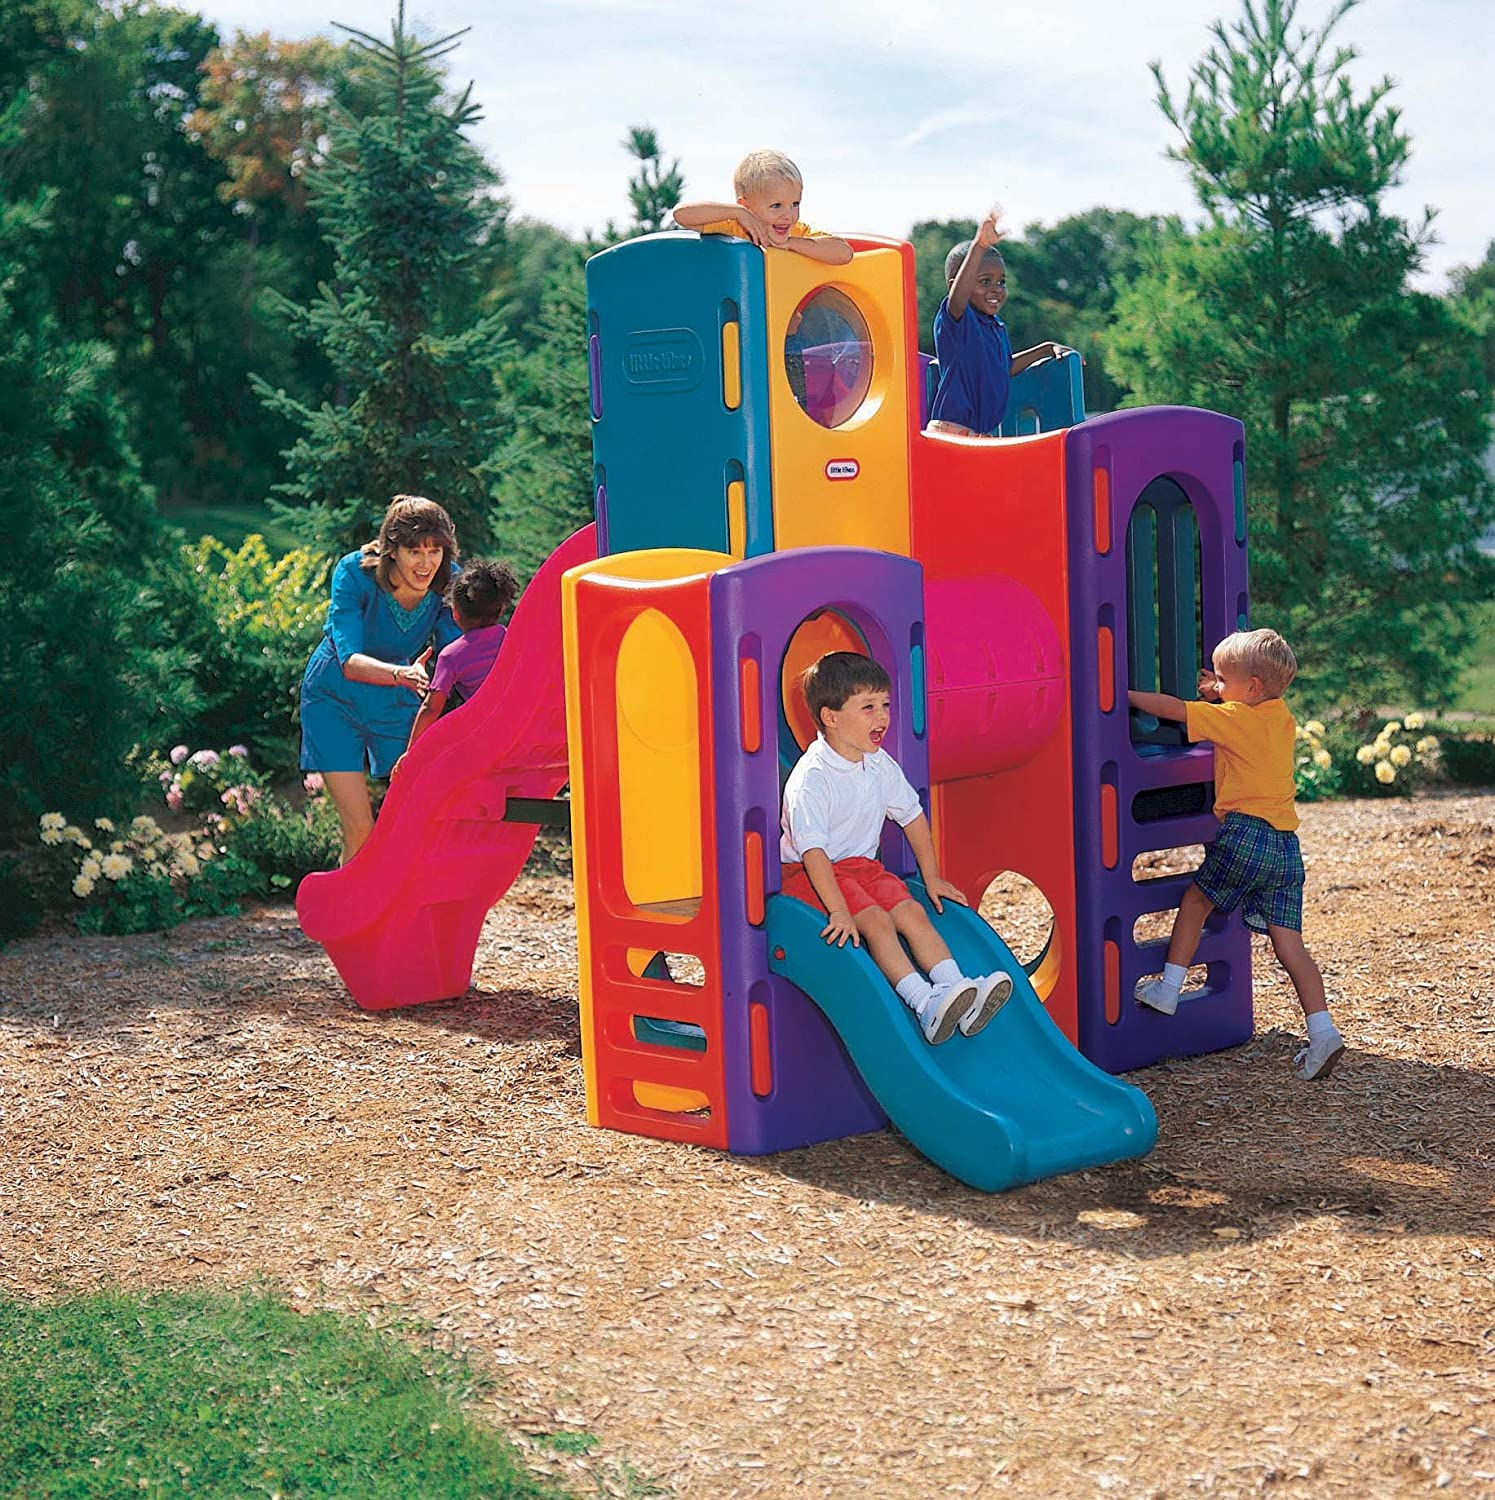 An Image of Little Tikes Little Tikes Playground